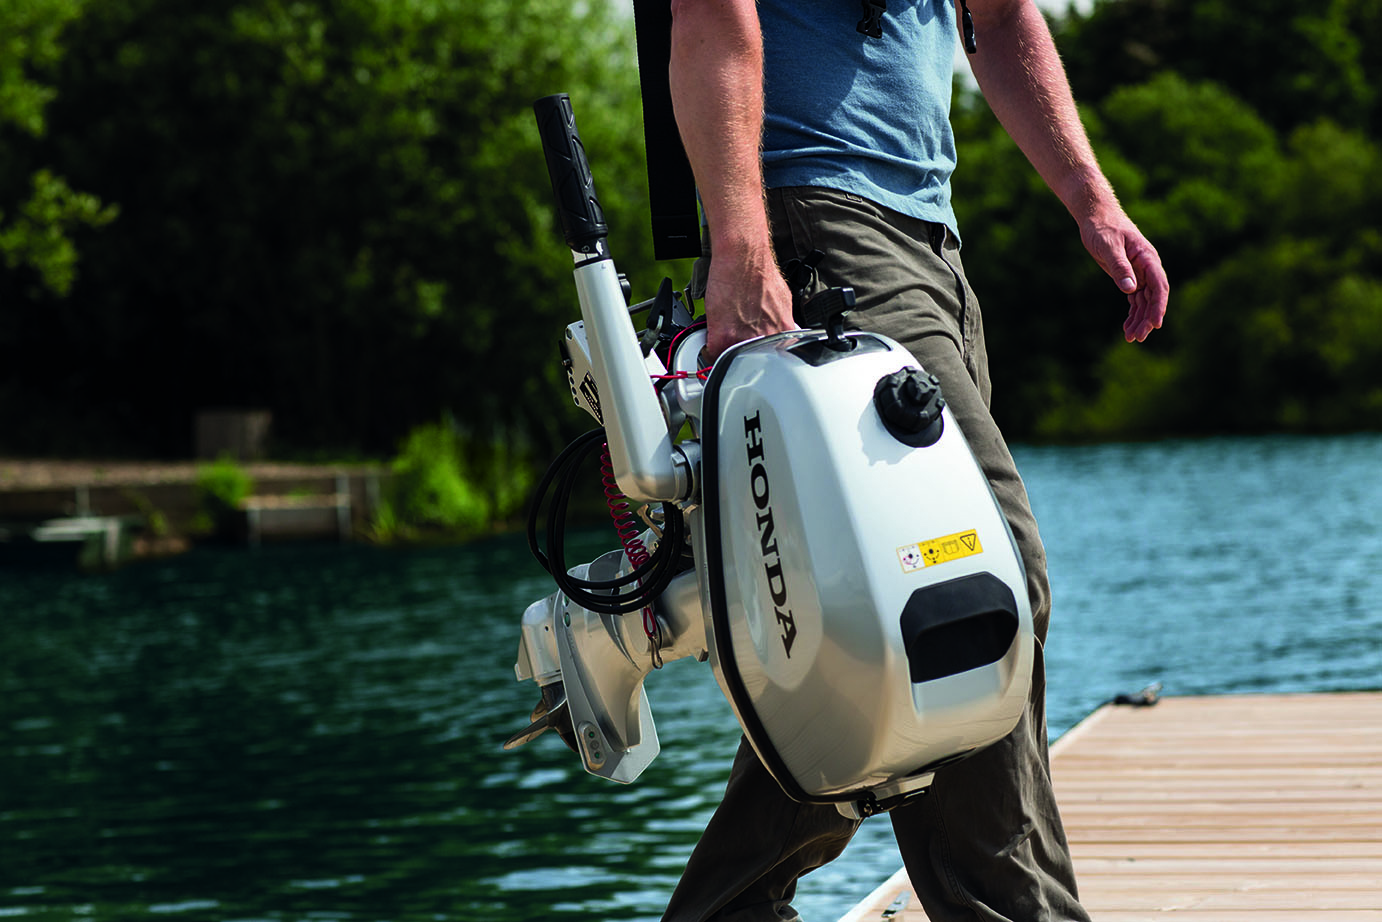 Honda marine introduces new portable outboards bush 39 n for Used outboard motors nj